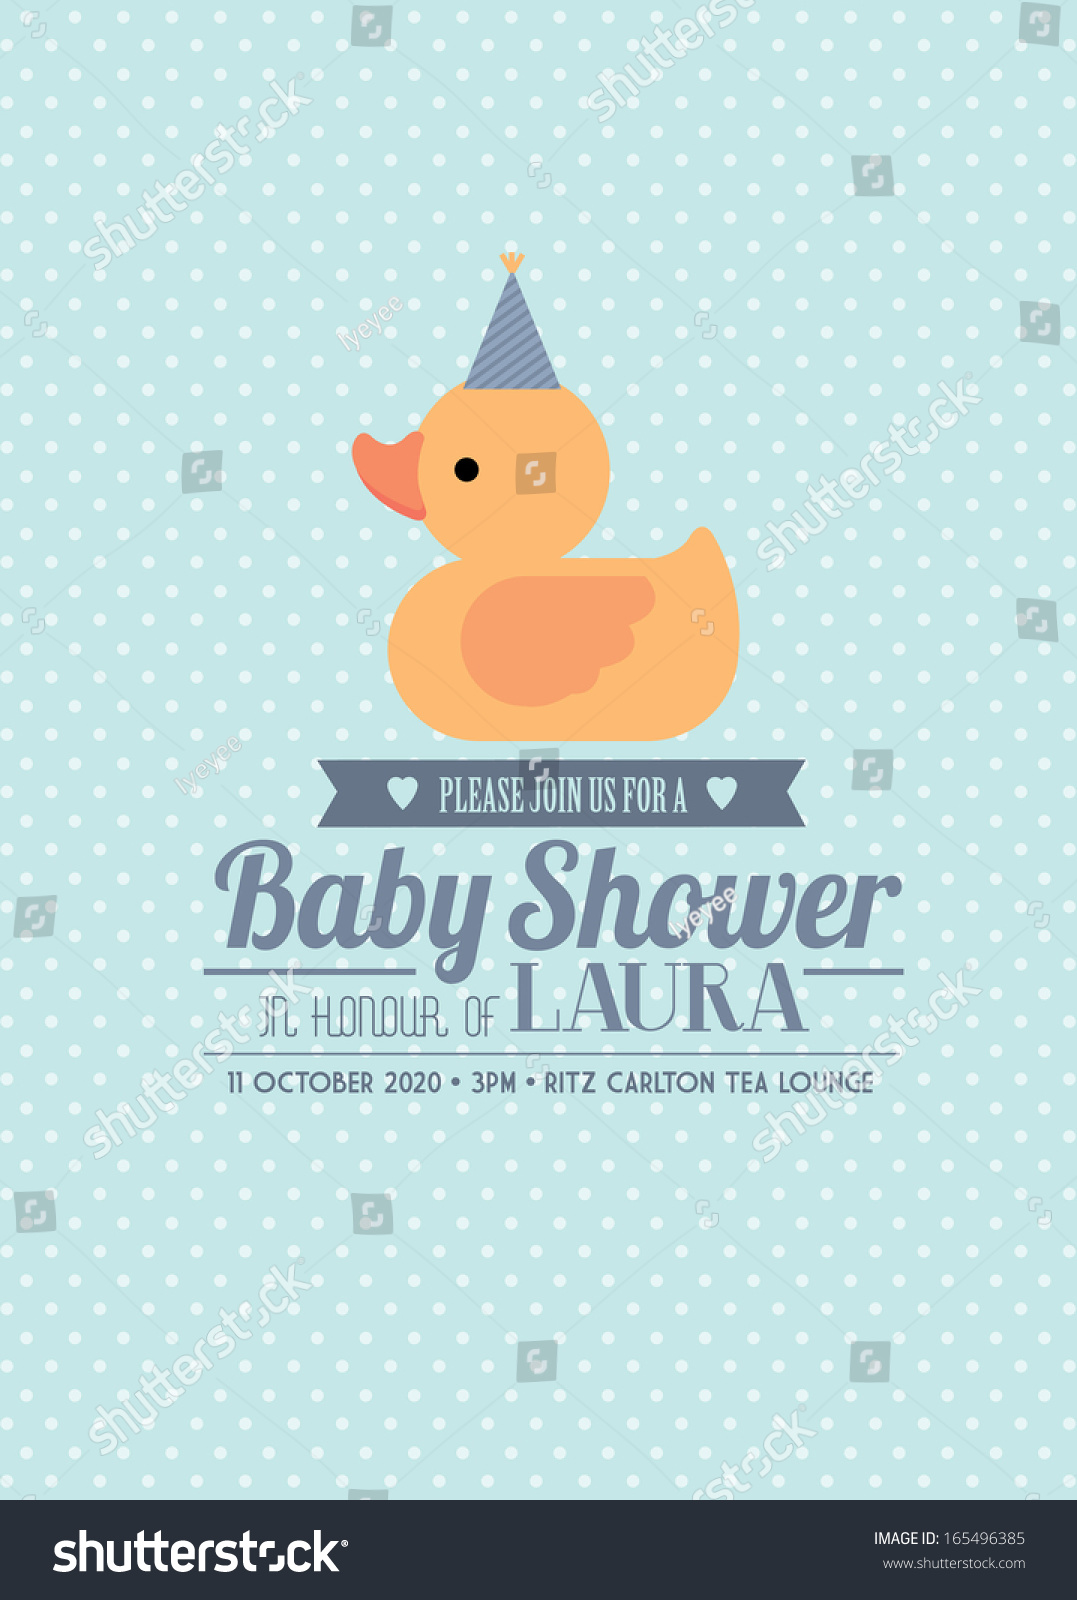 Rubber Ducky Baby Shower Invitation Card Stock Vector 165496385 ...